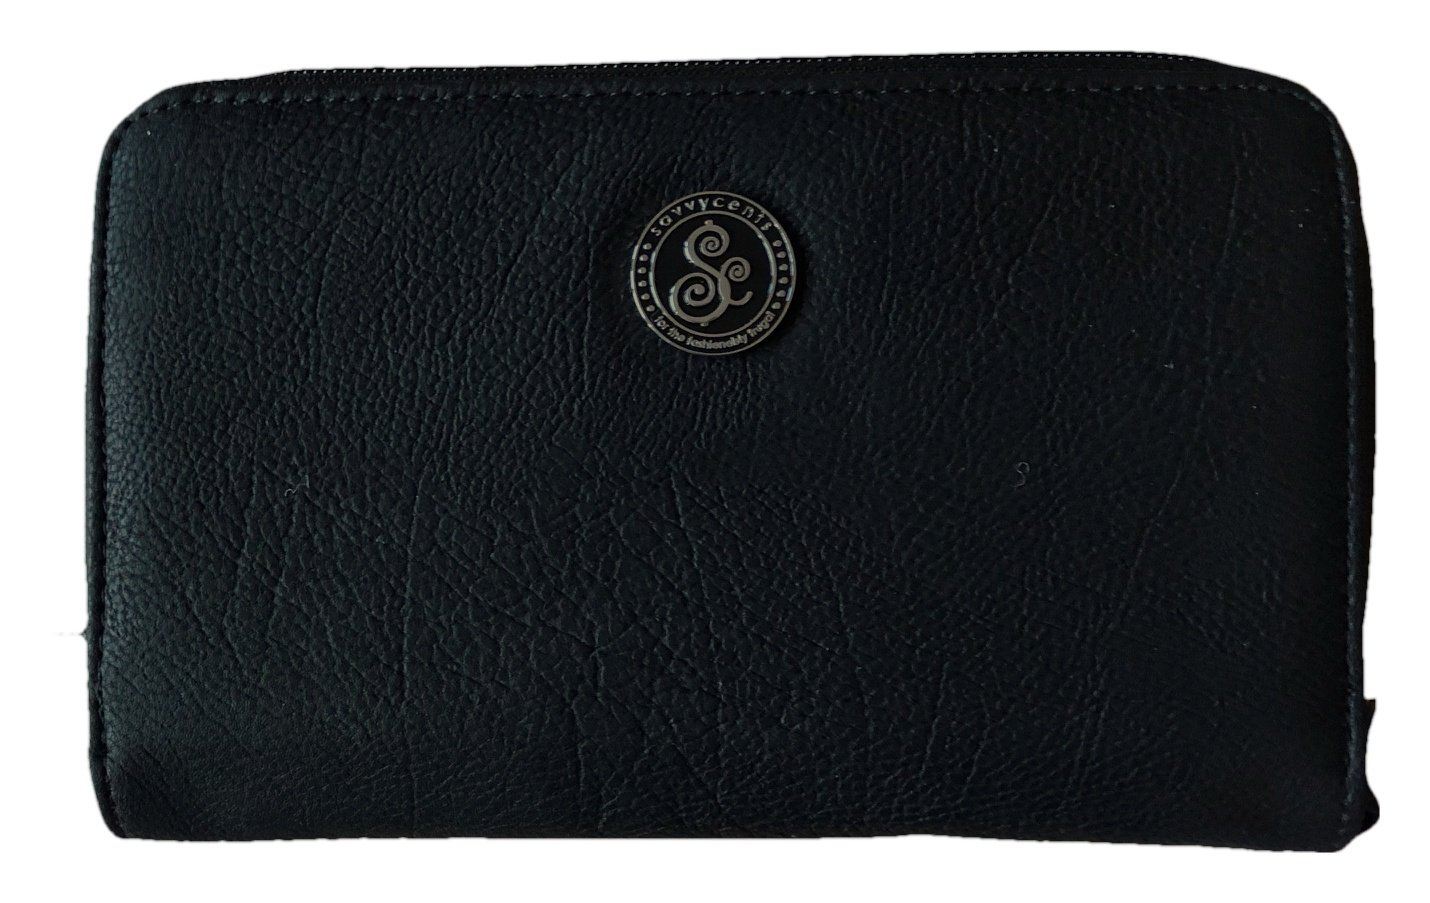 Savvycents Wallet (Black Matte)